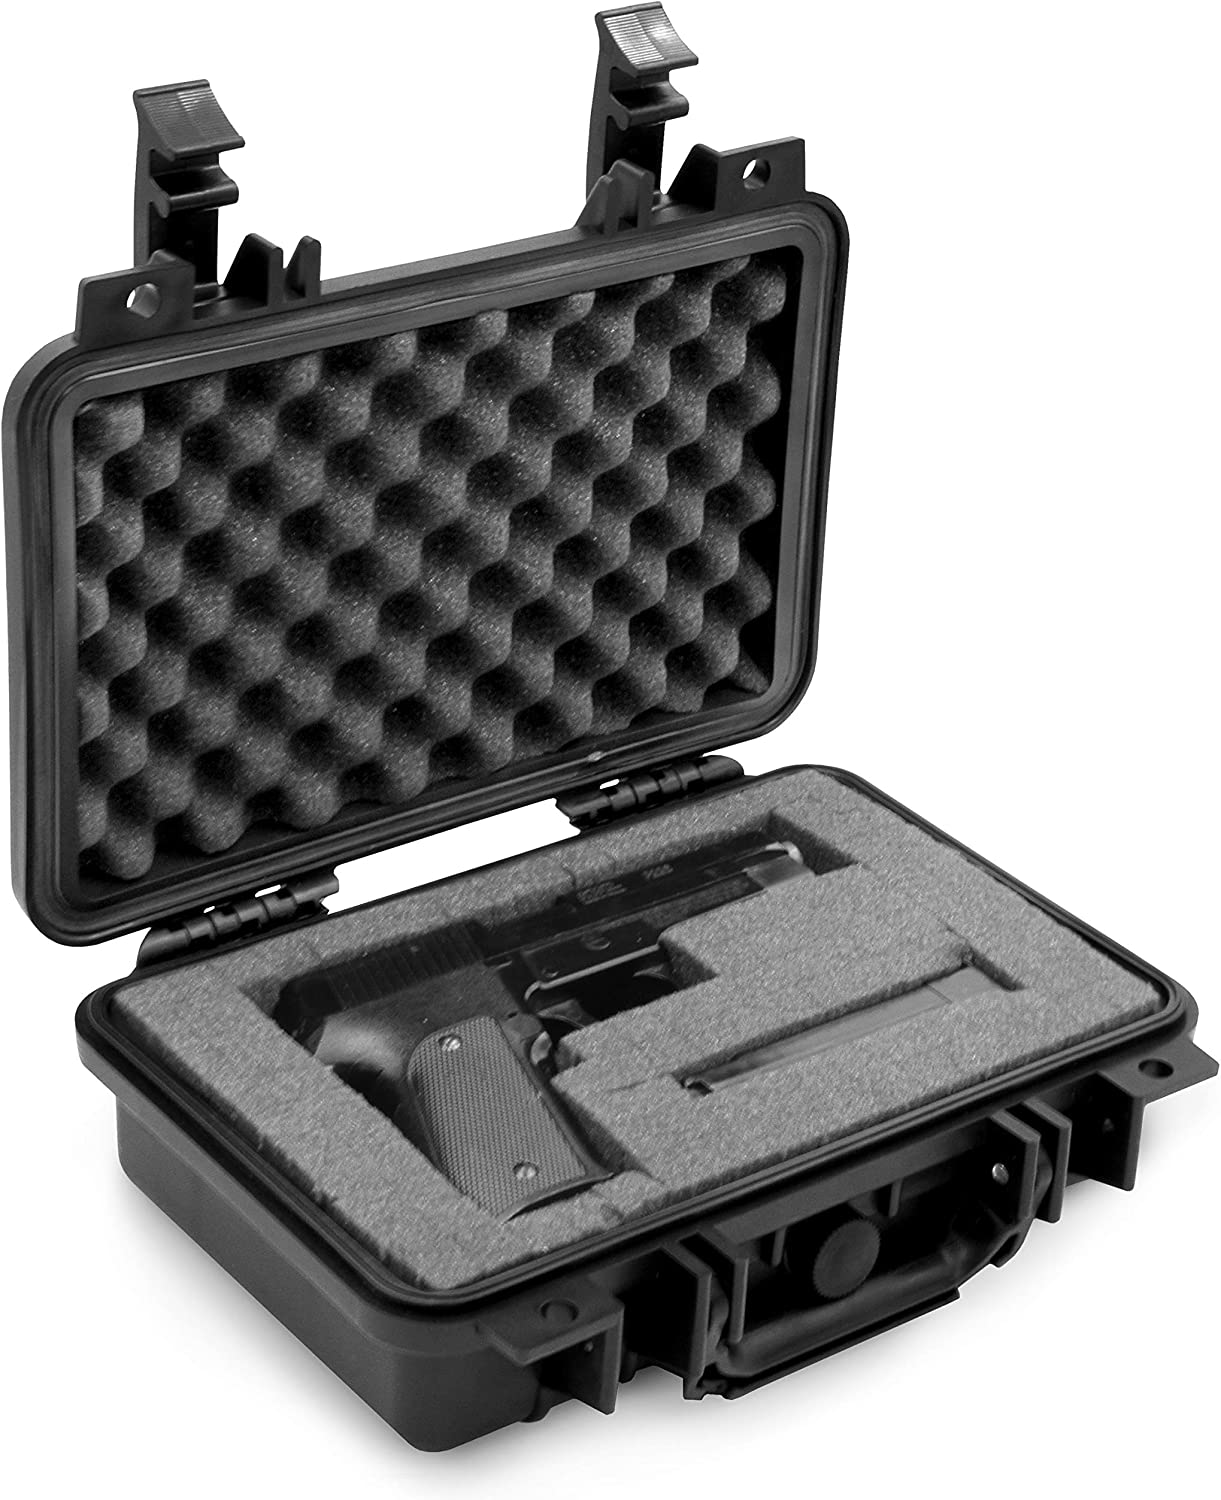 CASEMATIX Hard Gun Case for Pistols - Waterproof & Shockproof Gun Cases for Pistols, Compact 9mm Gun Case for Carrying Handgun with Scope and Accessories